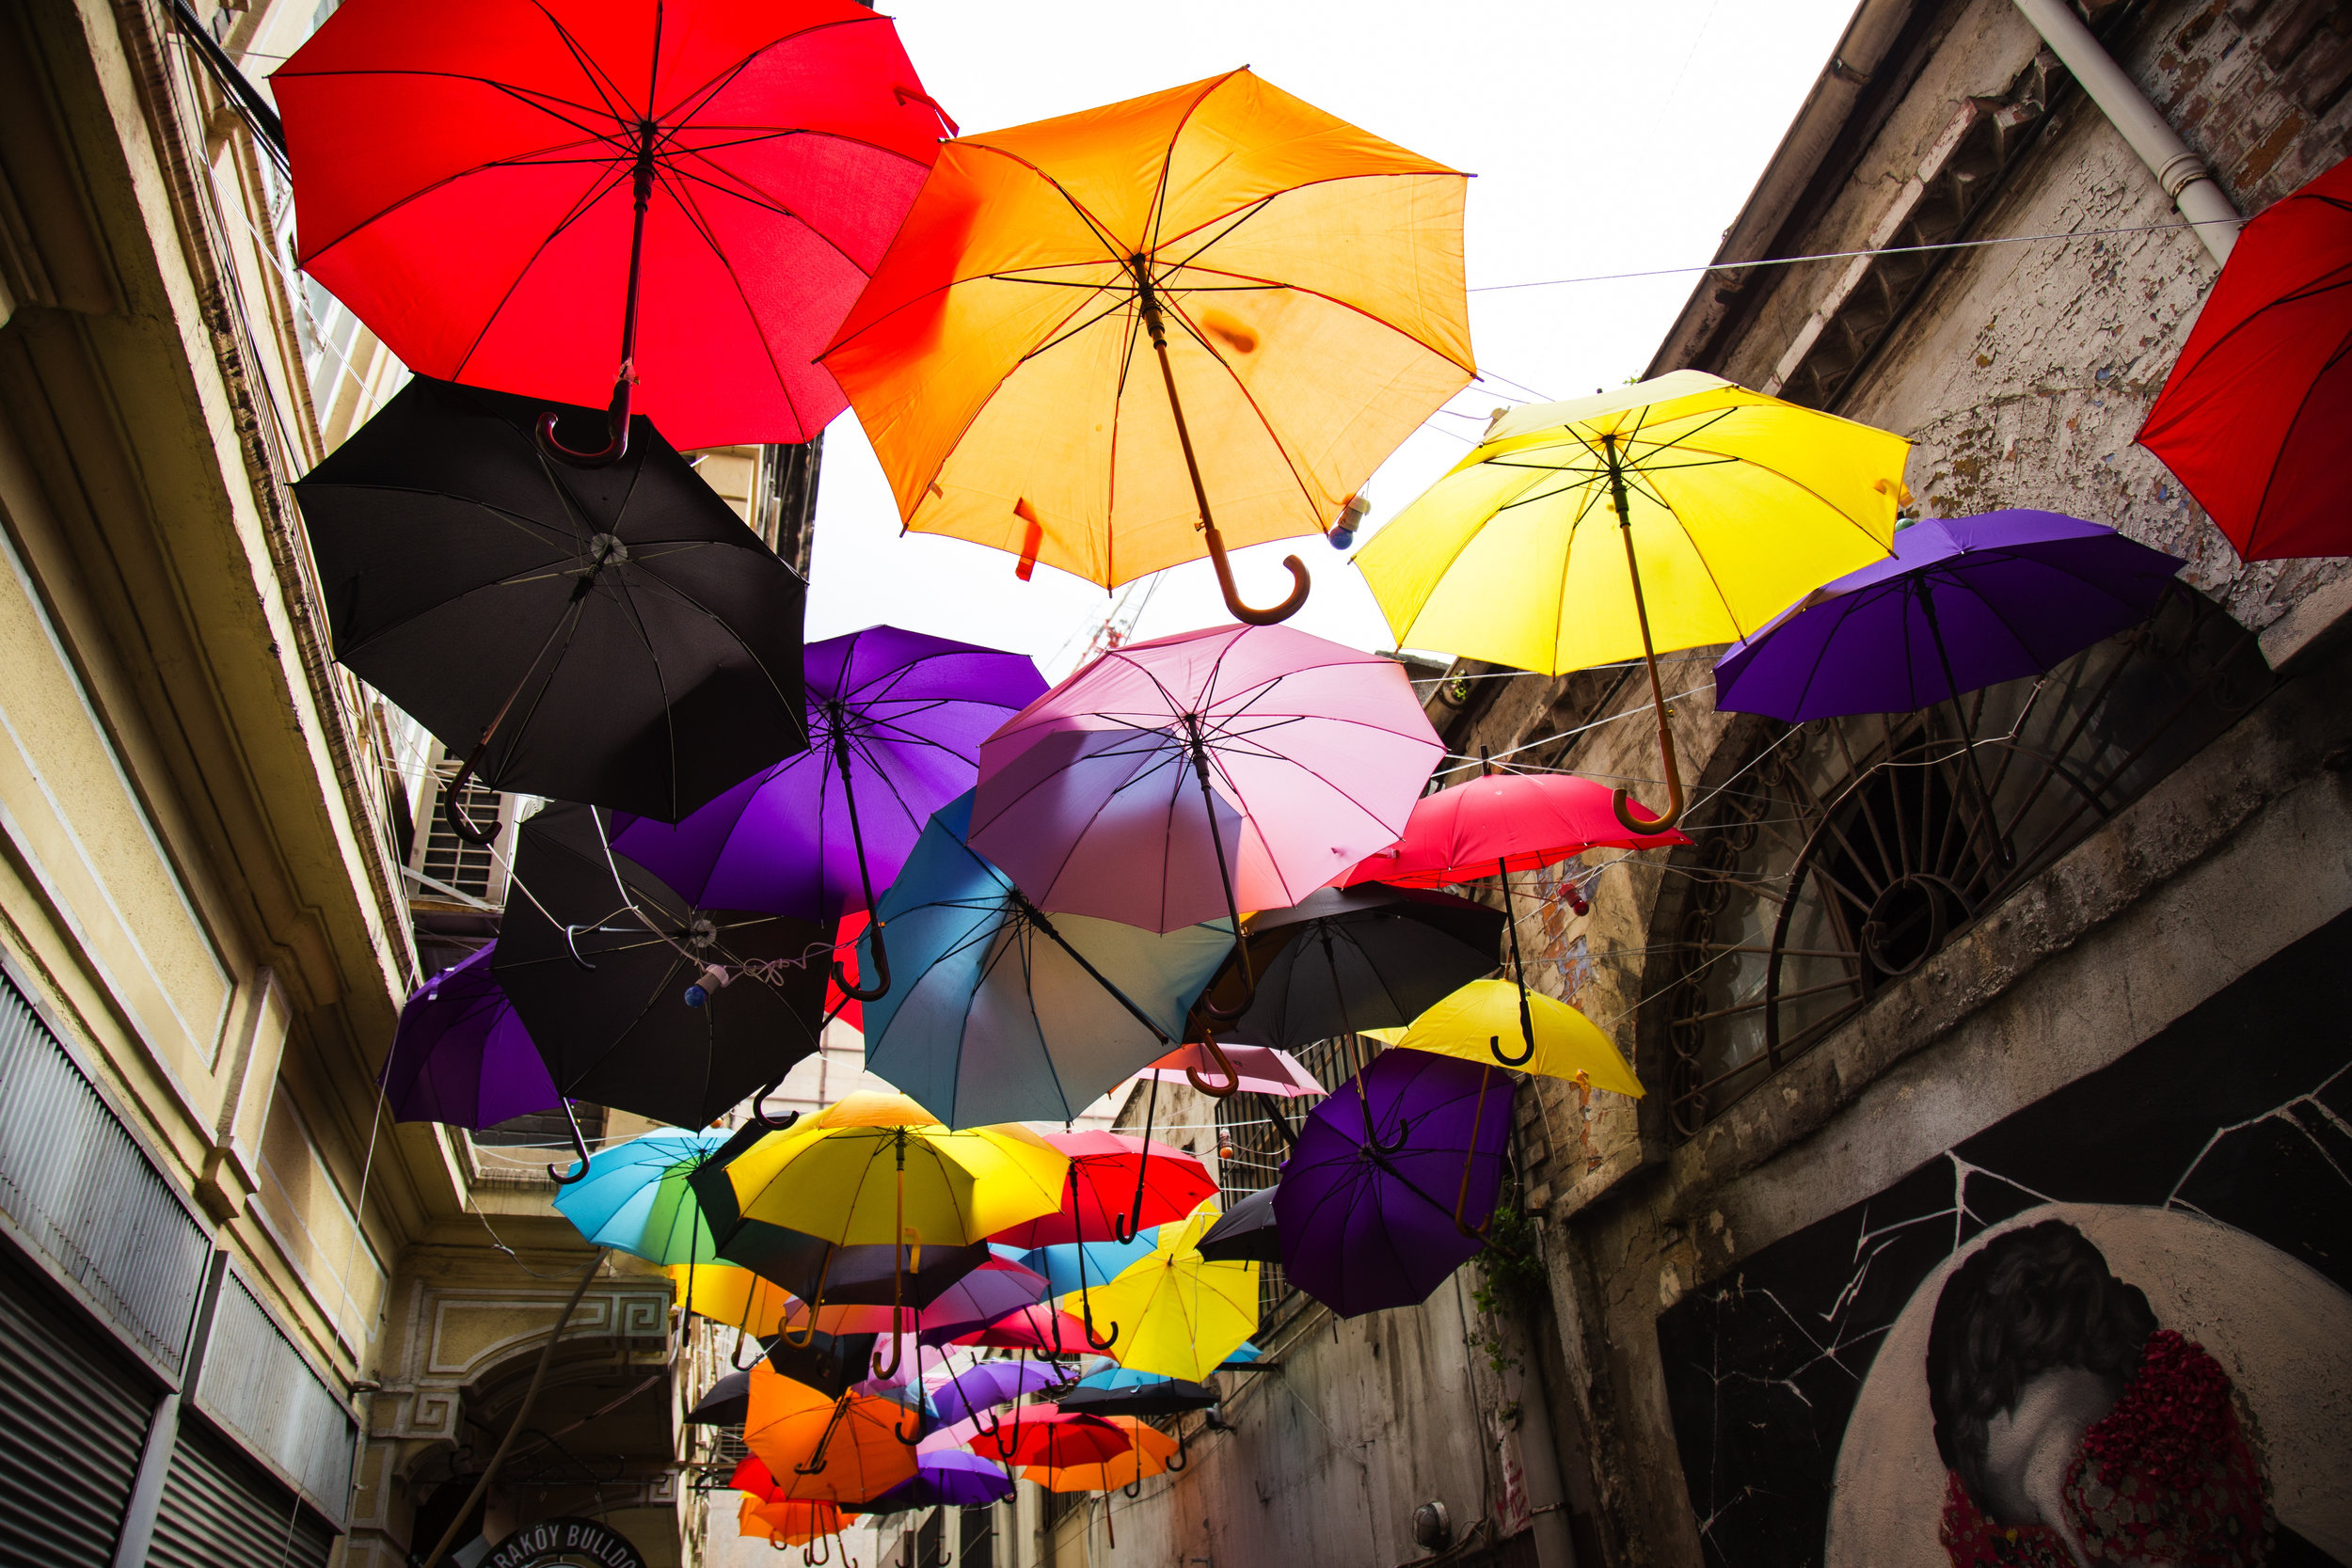 Canva - Assorted-color Umbrellas.jpg